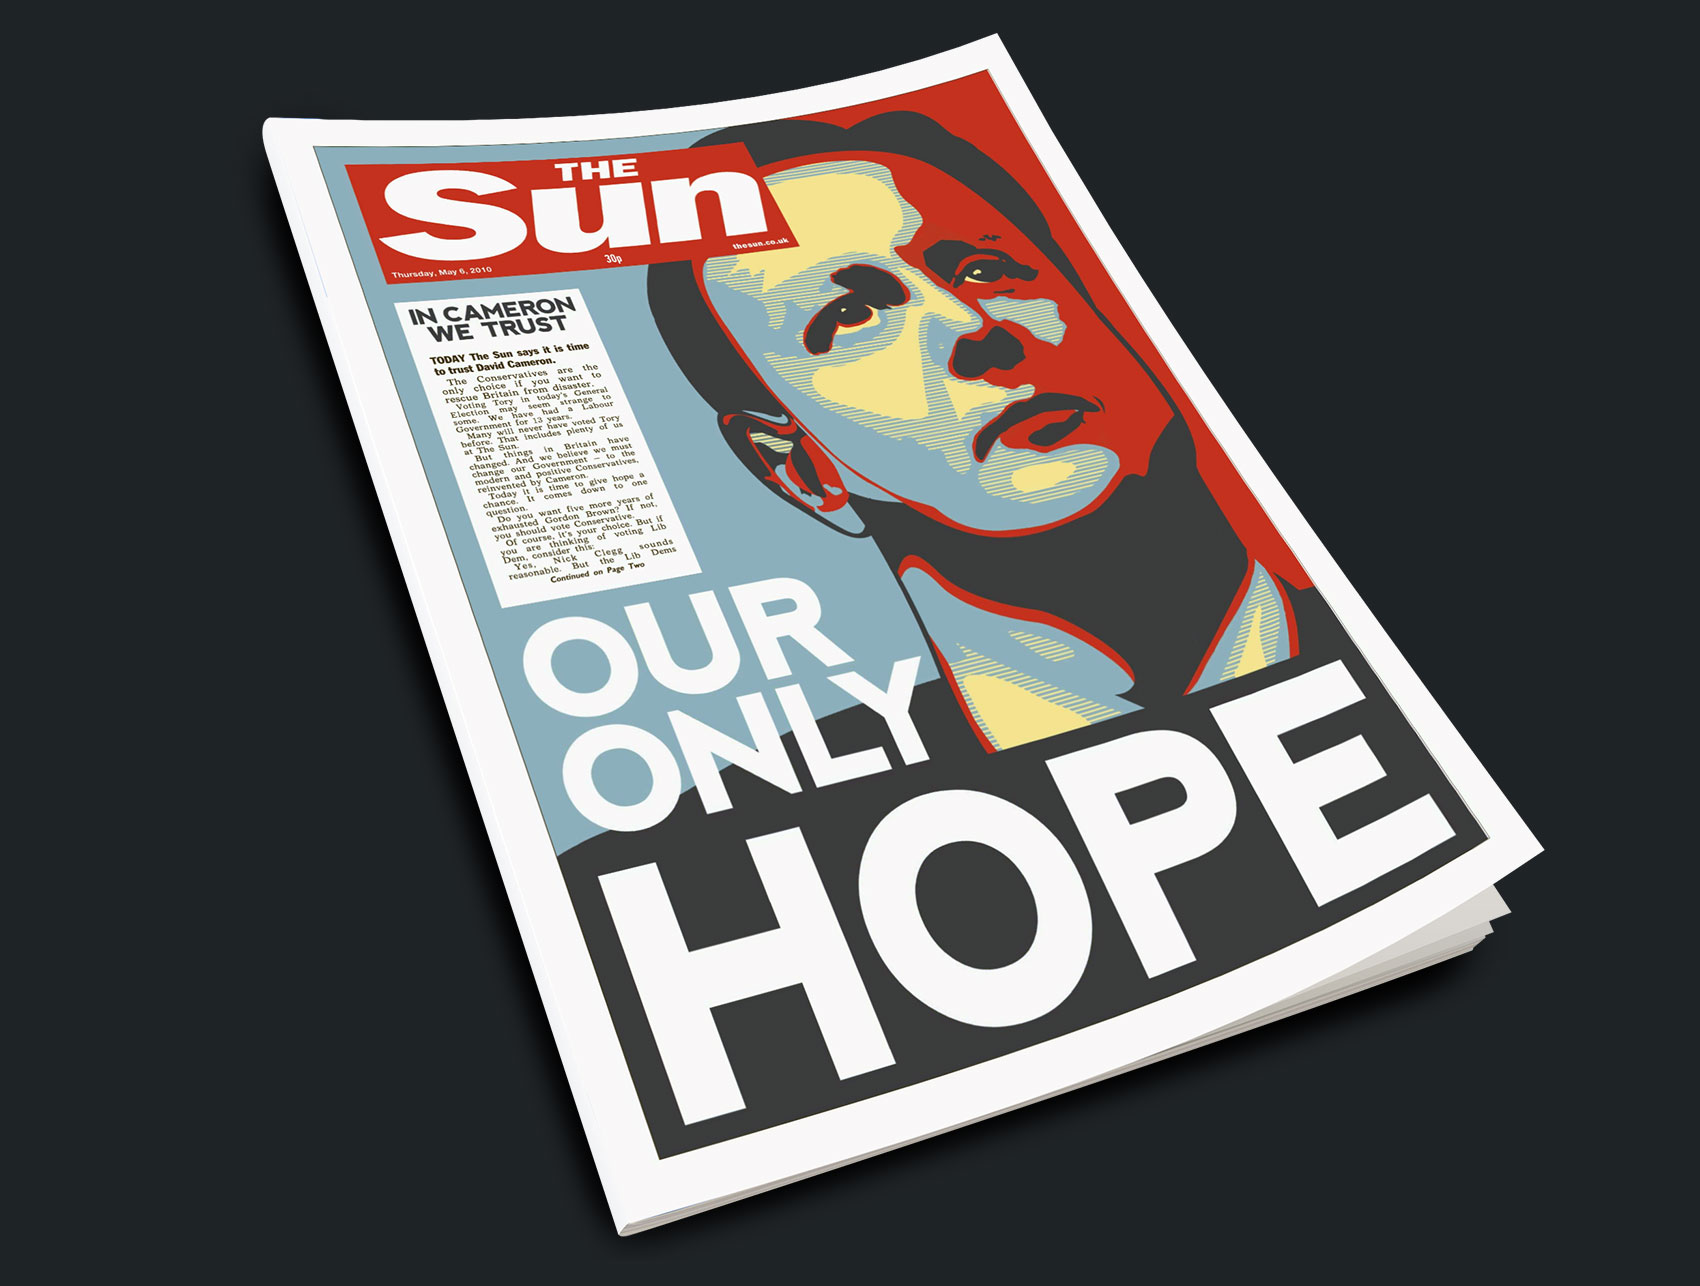 The Sun Front Page, David Cameron: Our Only Hope. In Cameron we trust